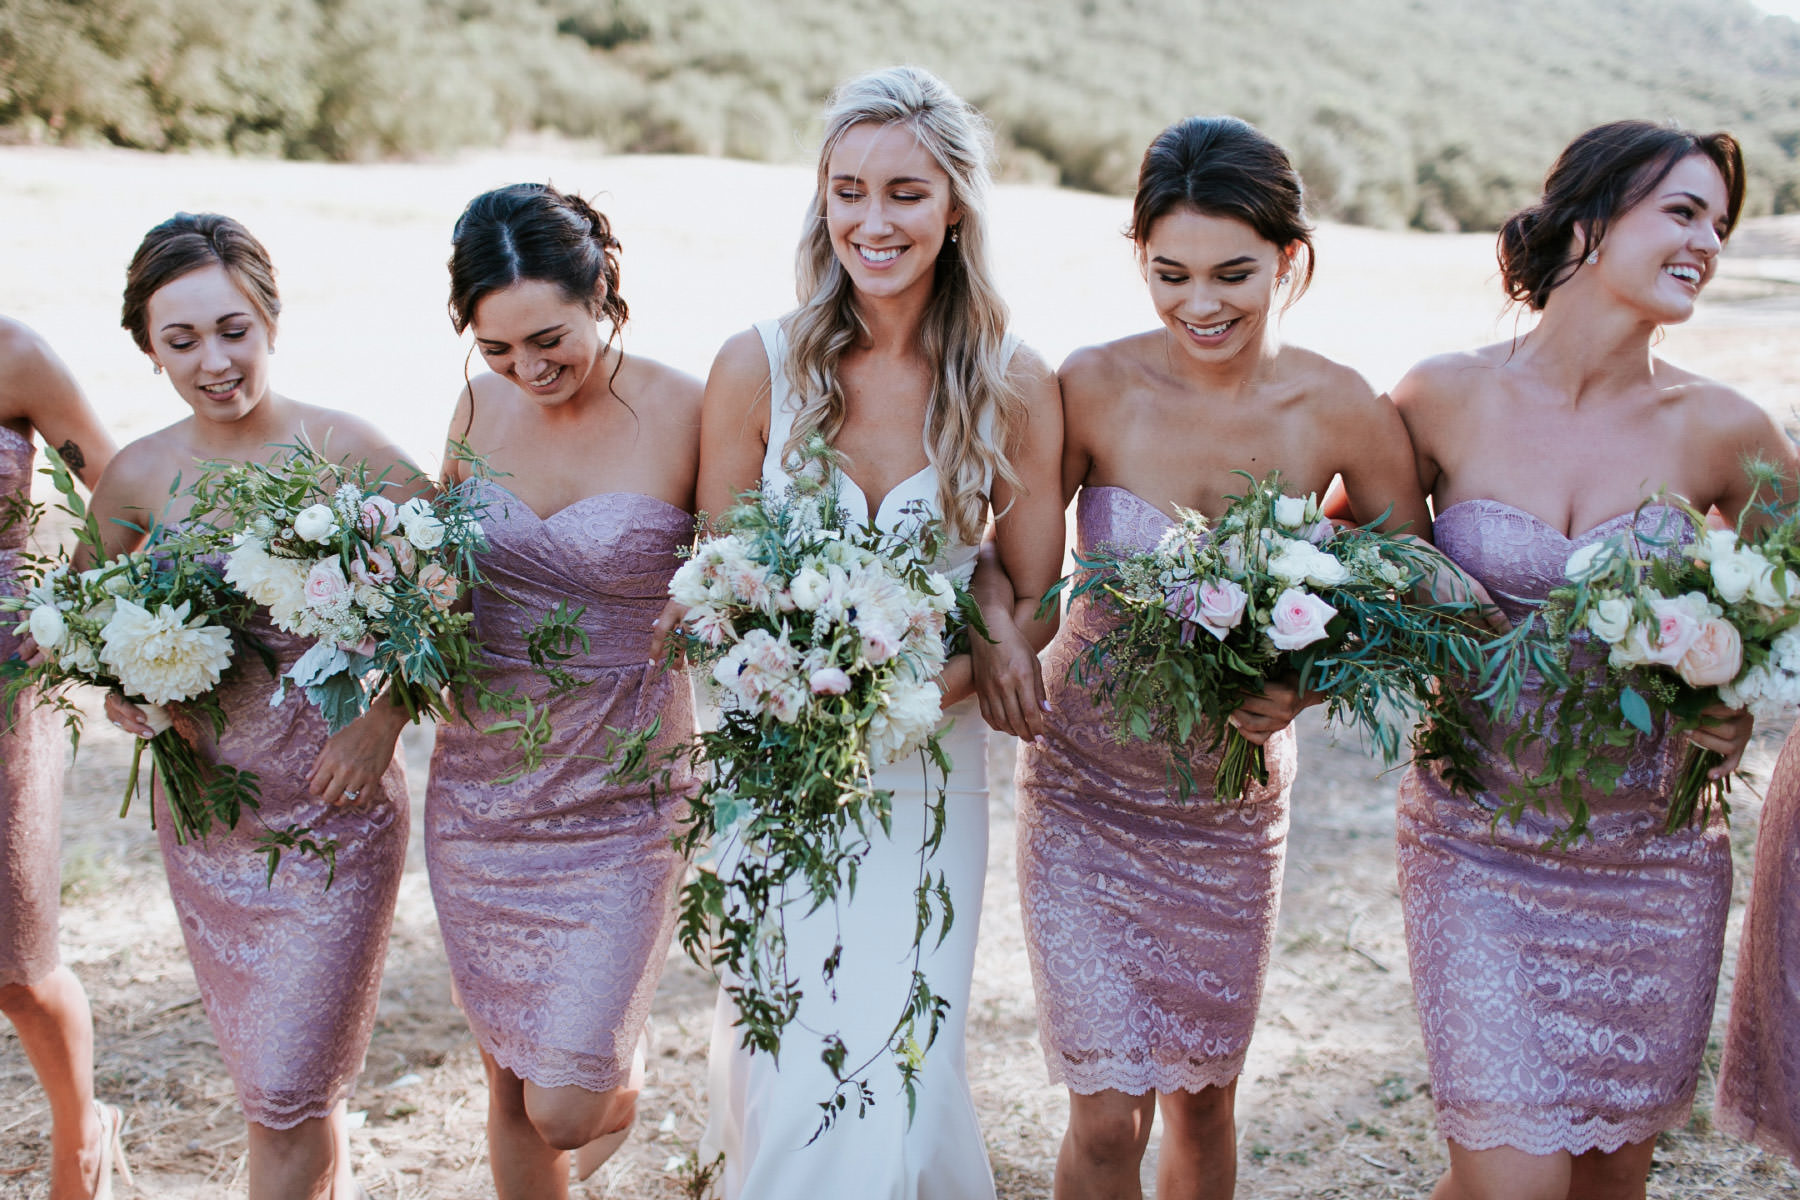 Modern bride walking with bridesmaids in metallic pink champagne dresses